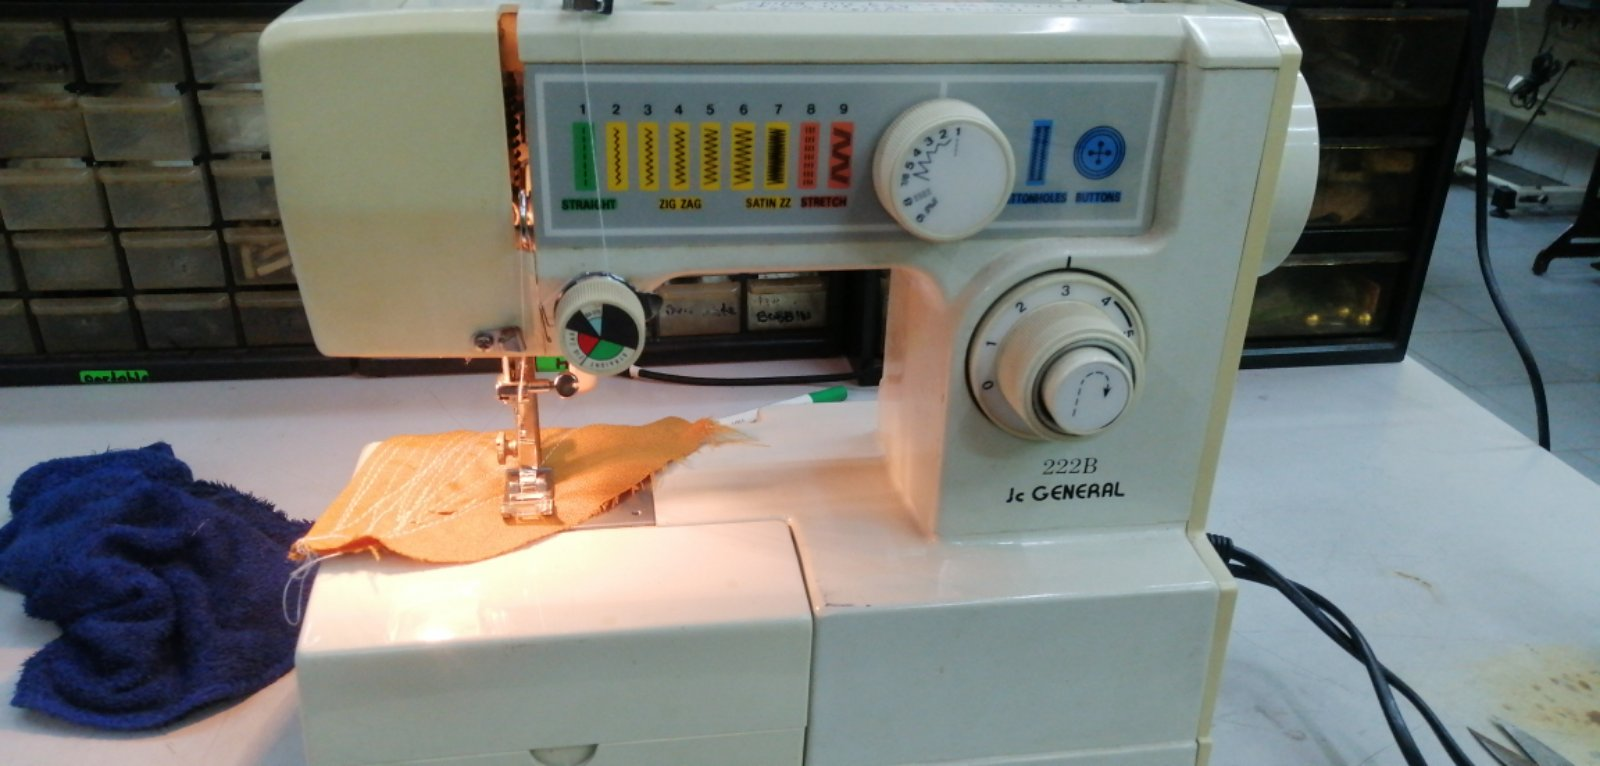 Repair Sevis JCGenenal Portable Sewing Machine